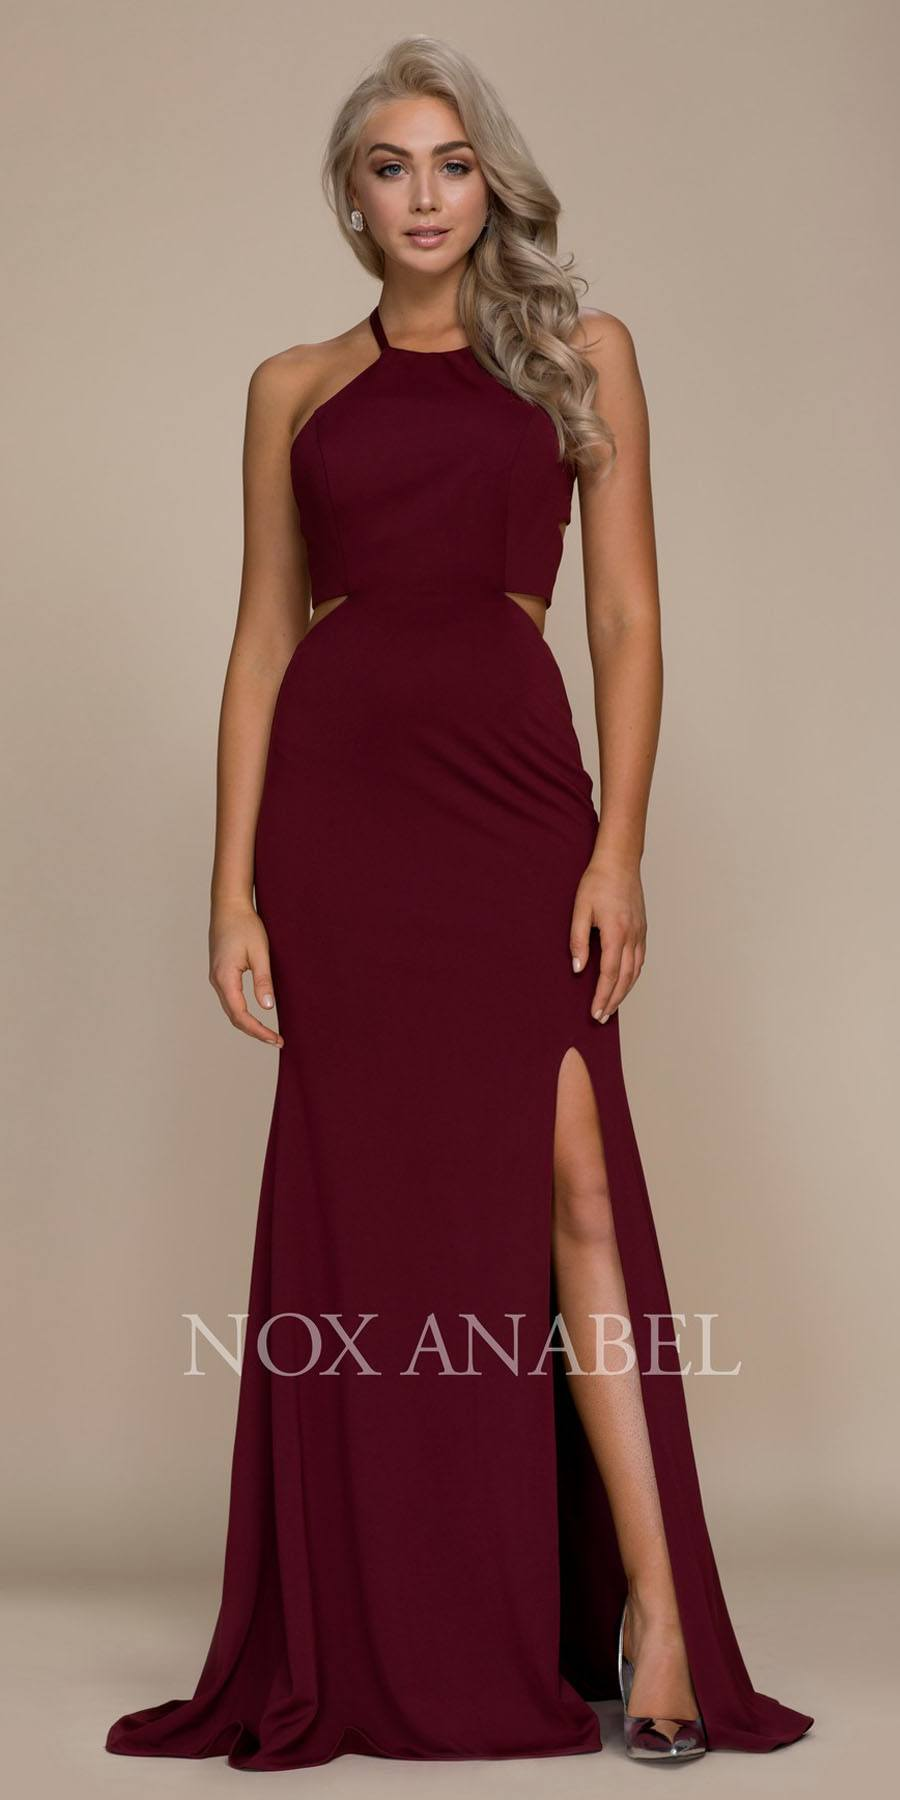 b69910e5fc0 ... Burgundy Halter Cut Out Long Prom Dress Strappy Back with Slit ...